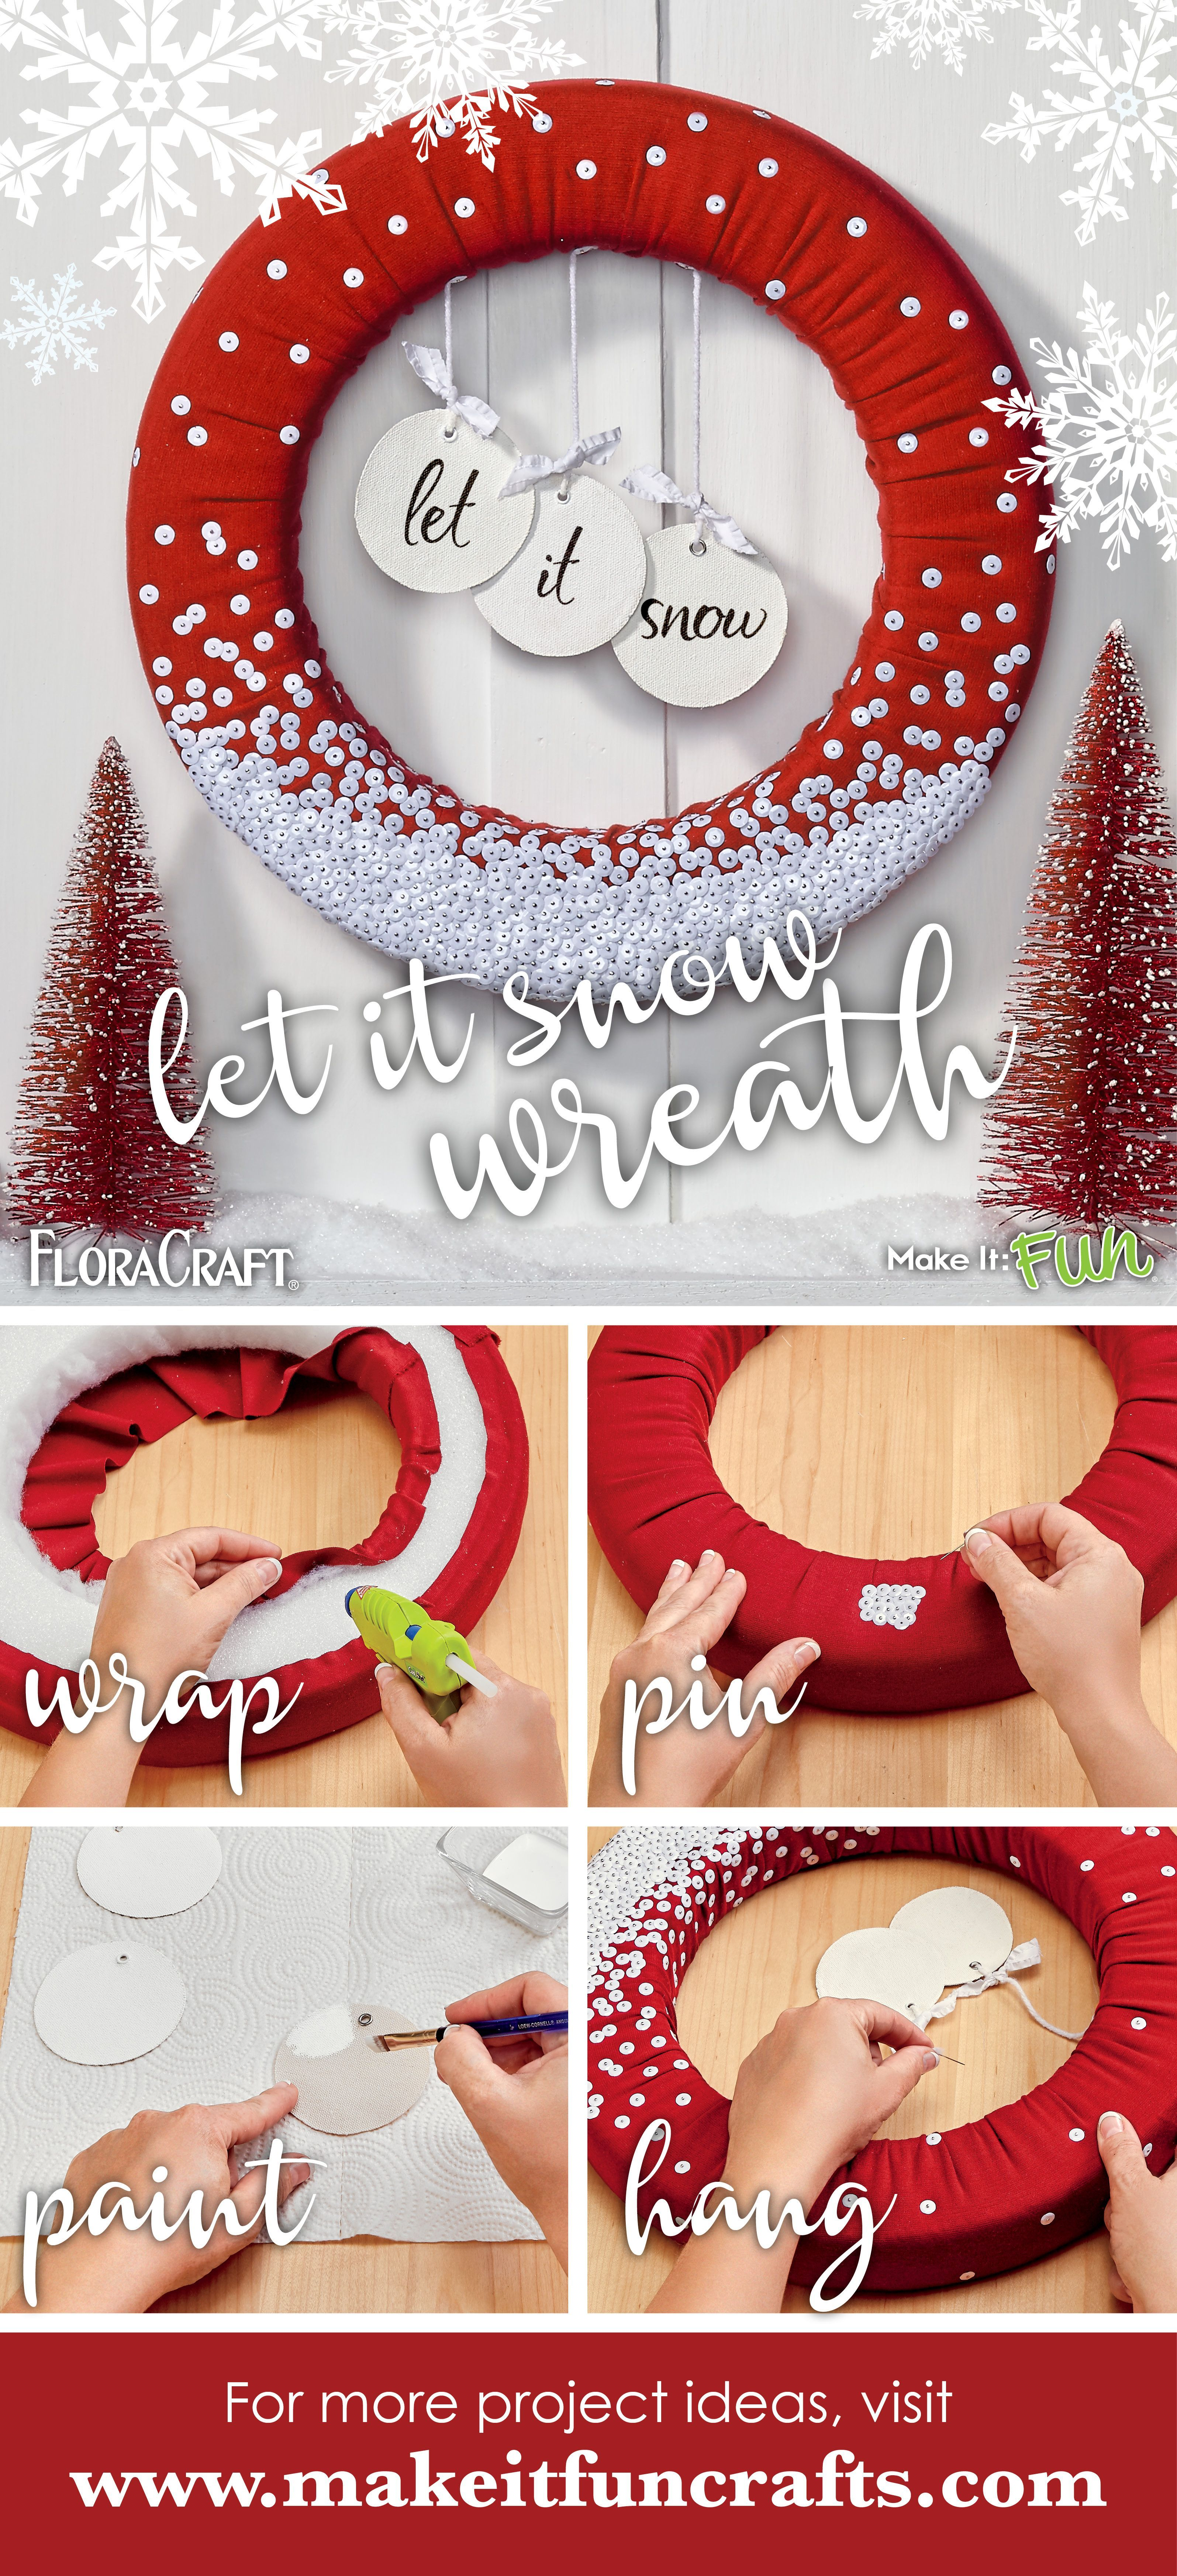 When You Ve Got No Place To Go Make Your Own Snow Globe Wreath And Let It Snow Let It Snow Let It Christmas Wreaths Diy Dollar Store Christmas Xmas Crafts